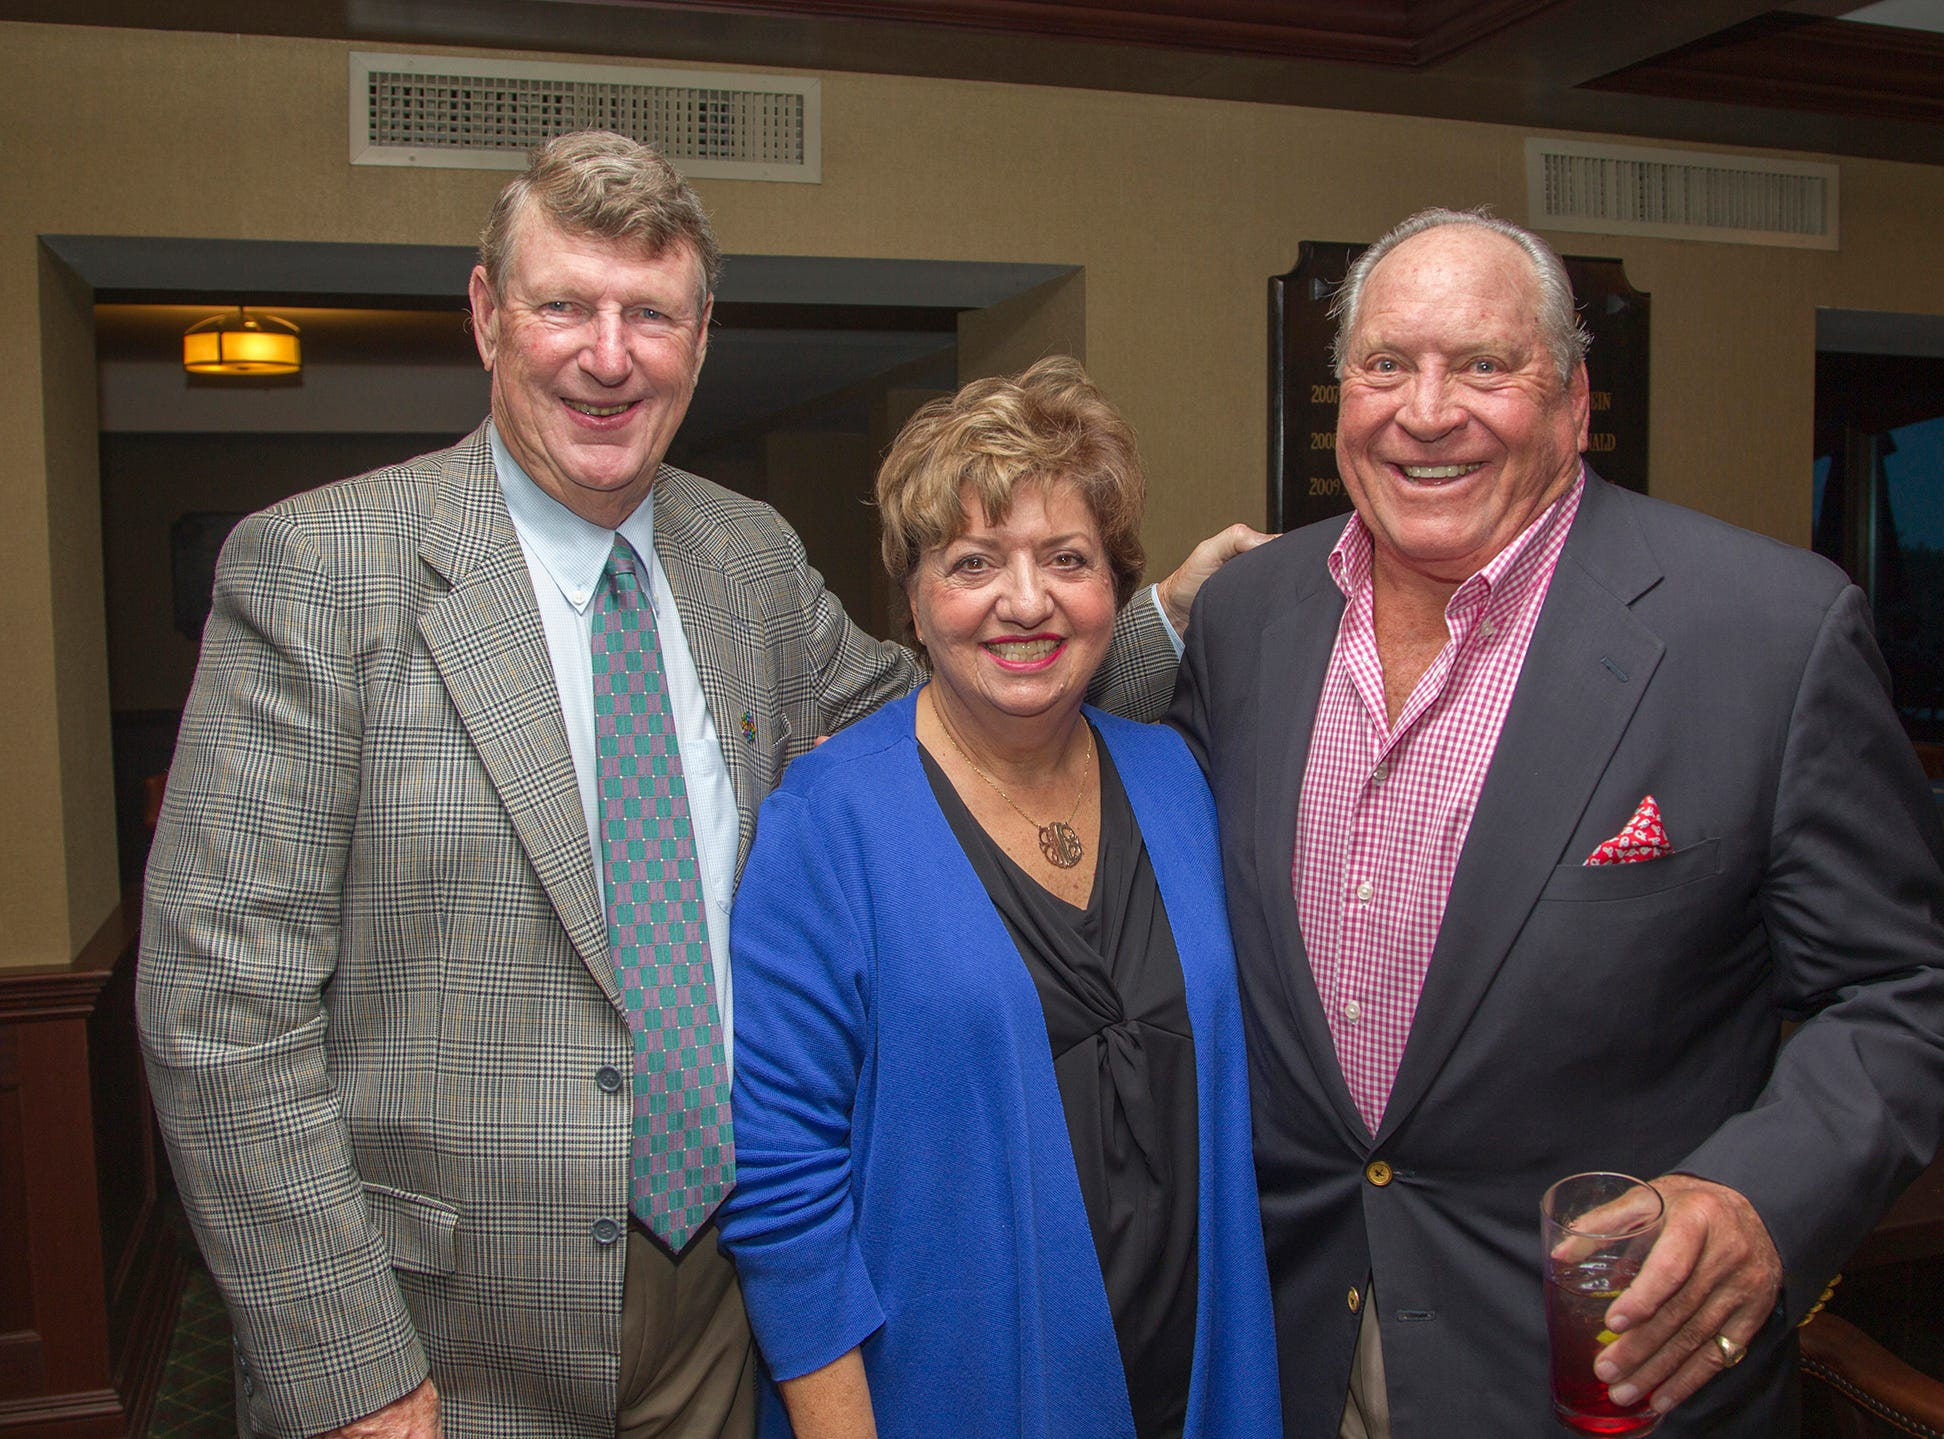 Bill and Joan Murray, Dr. Terry Hensel. Seventh annual AIR Express Golf Outing honoring Dr. Dante Implicito, M.D. for his service to Hackensack University Medical Center. 10/16/2018